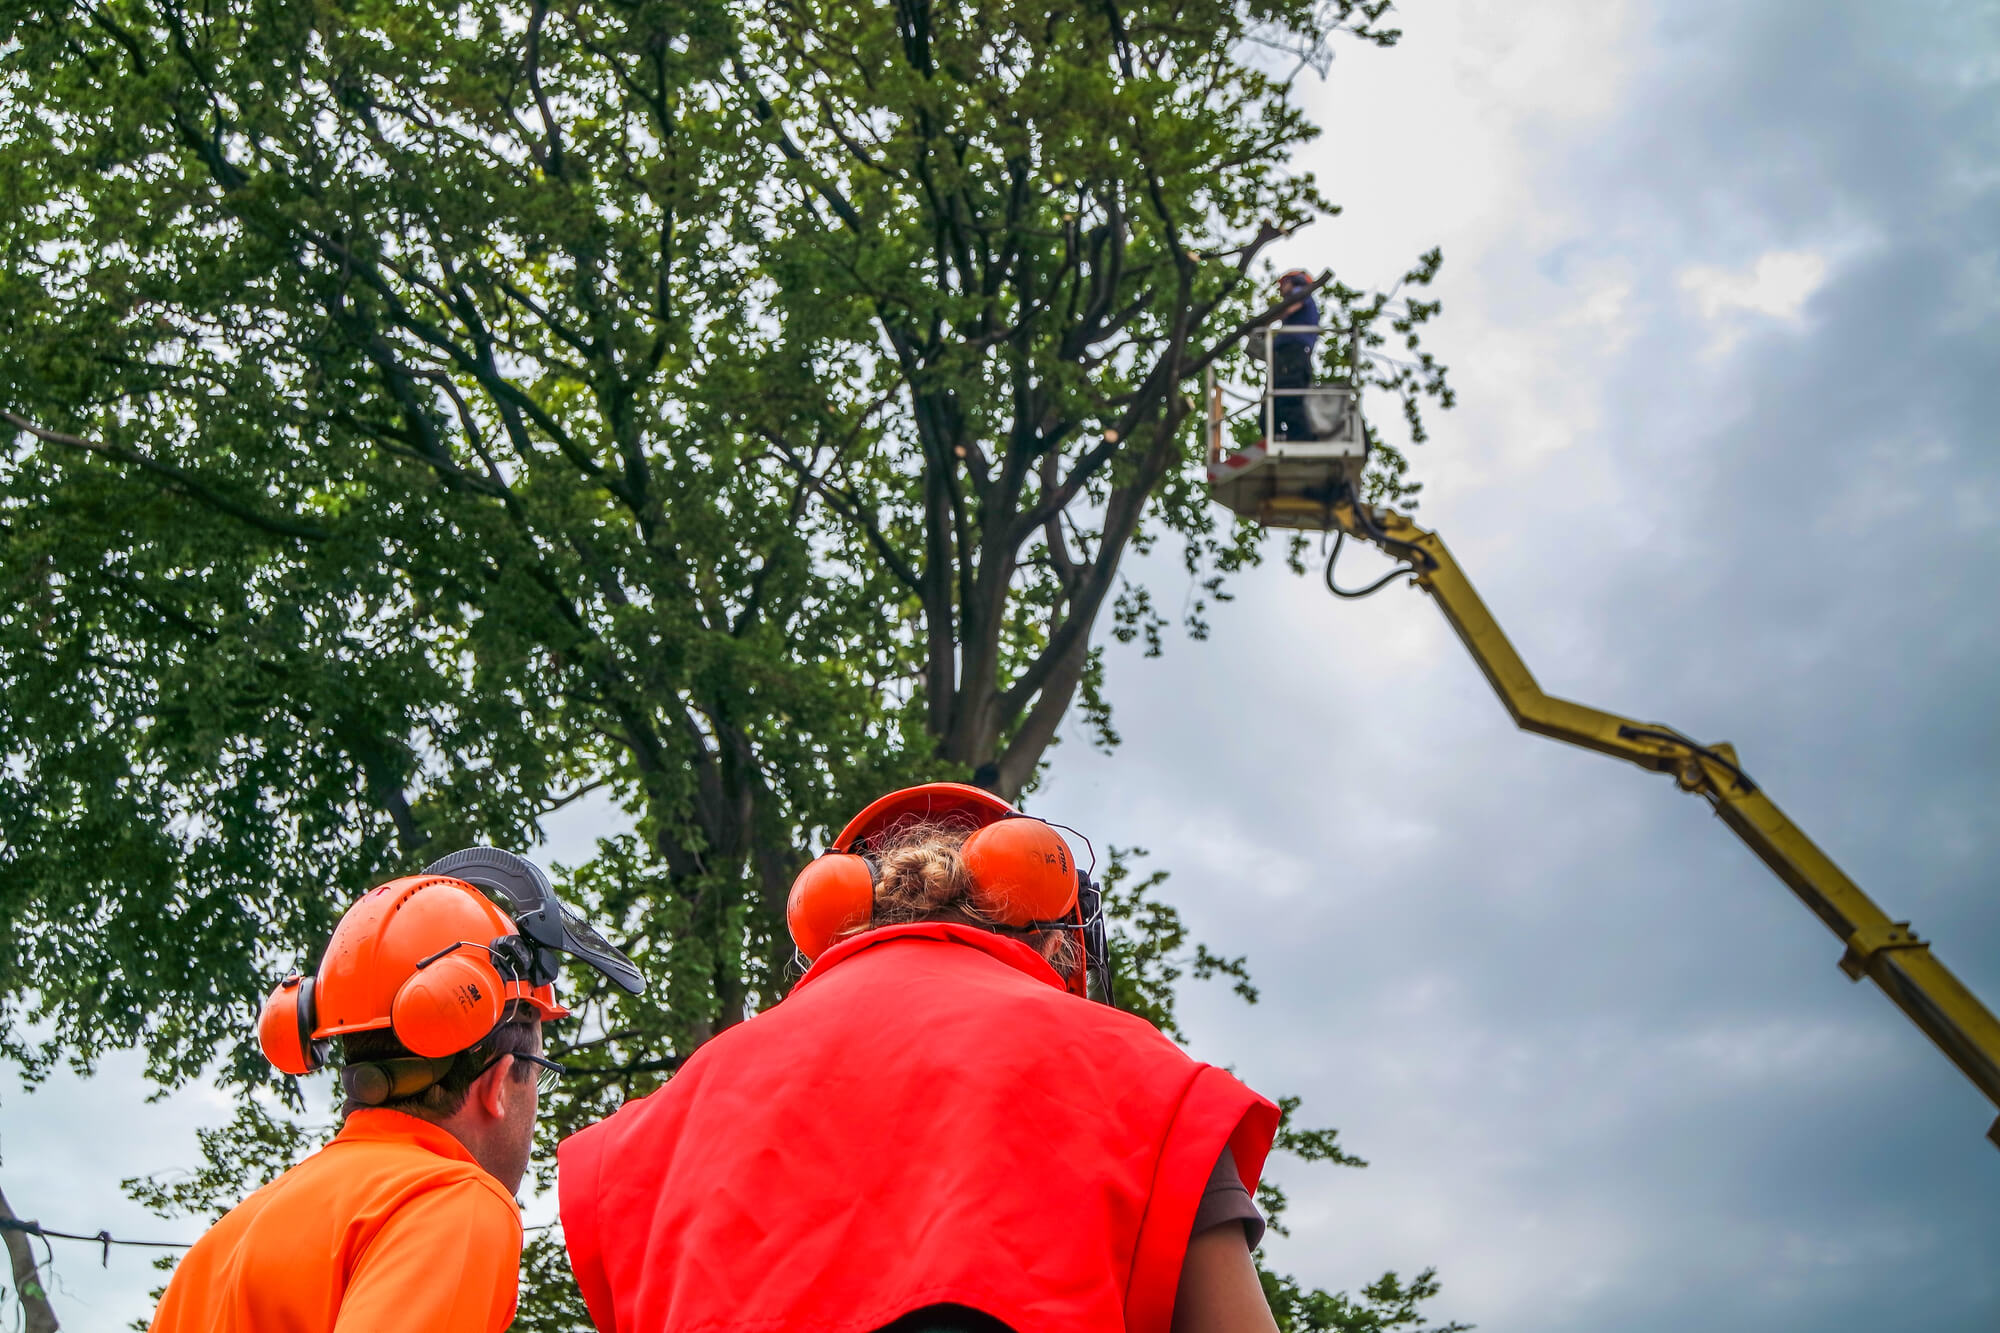 tree branch support services - Big Easy Tree Removal